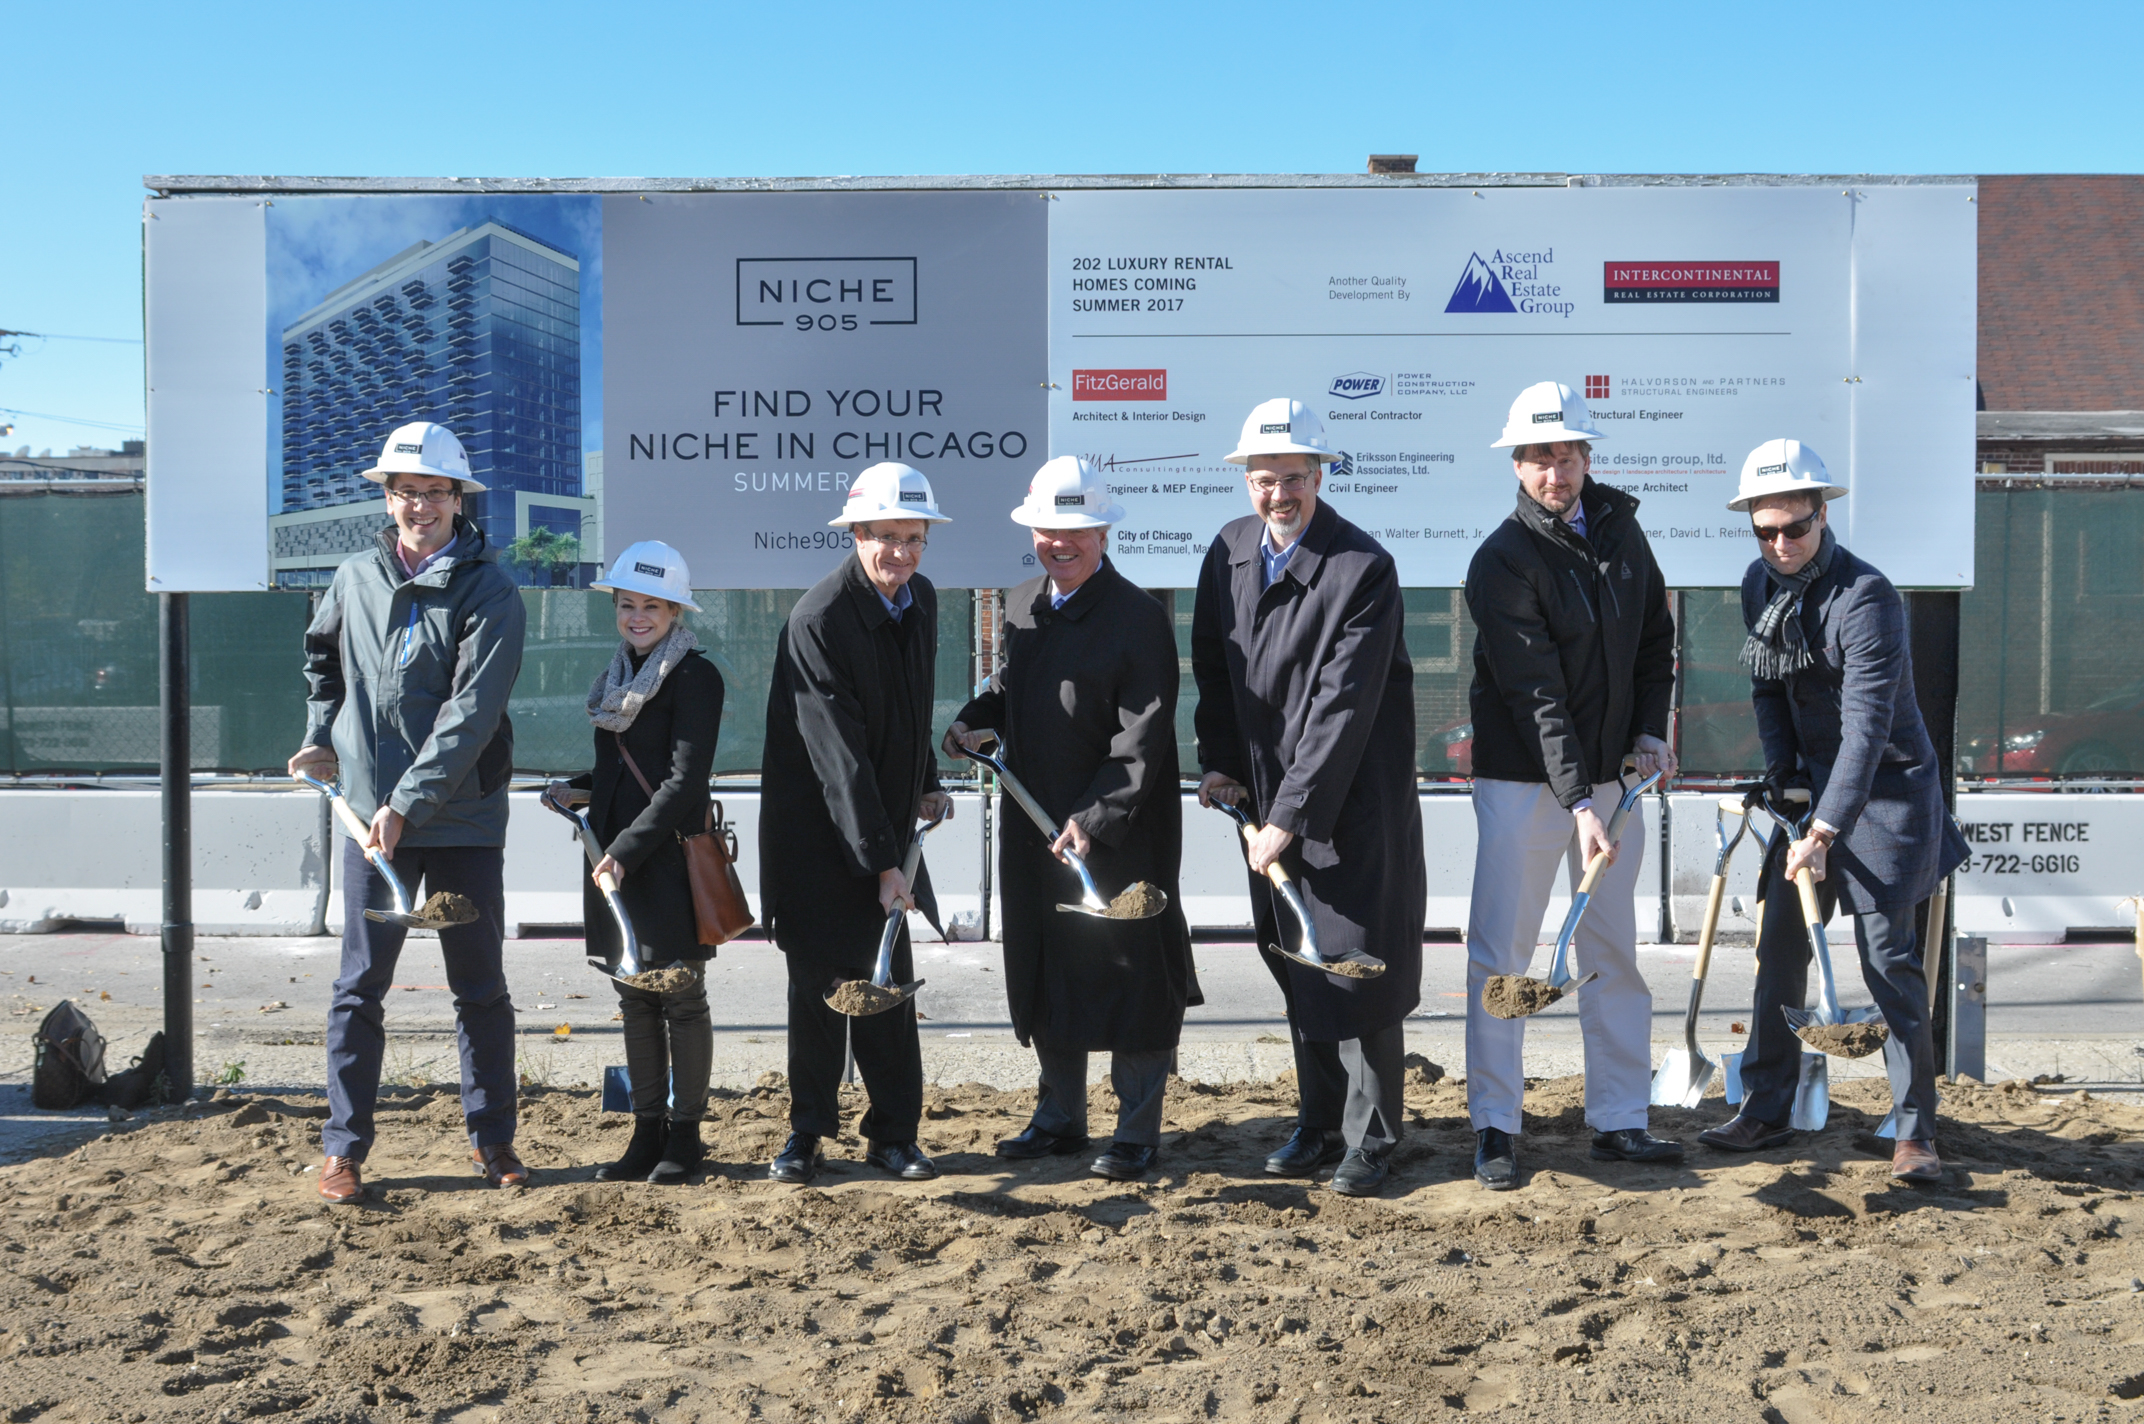 Groundbreaking at Niche 905